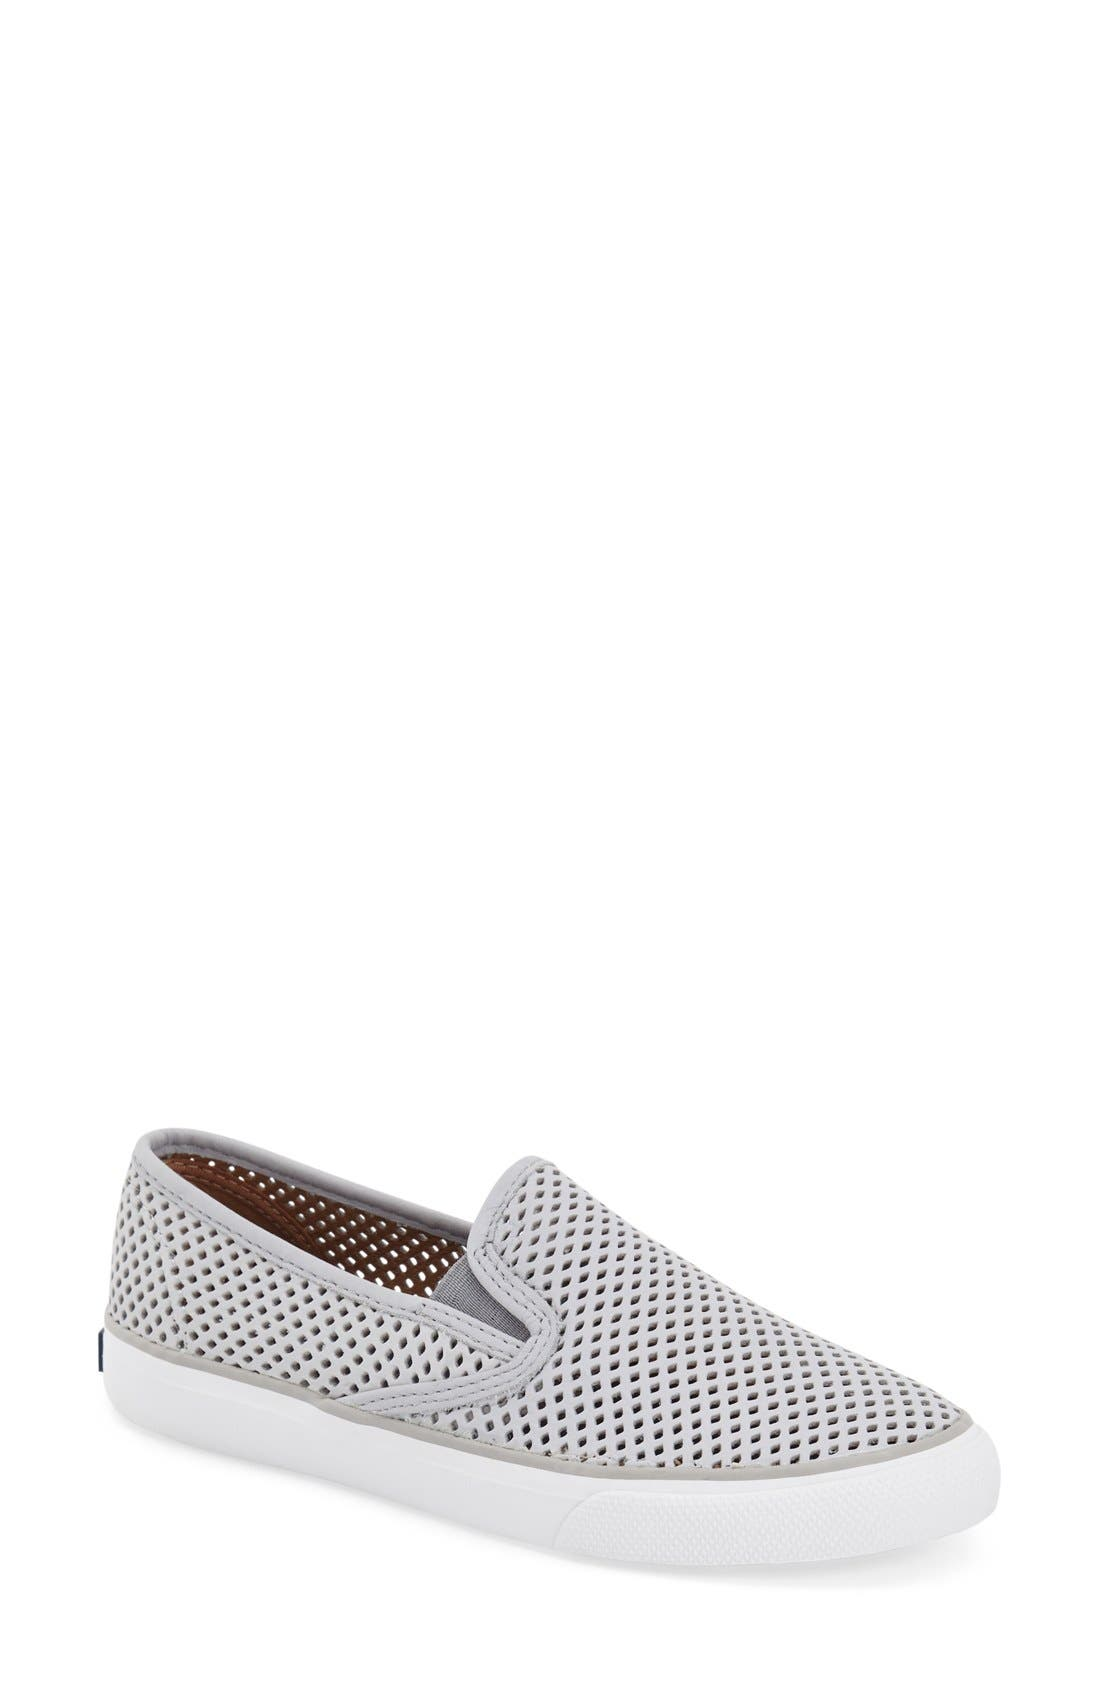 'Seaside' Perforated Slip-On Sneaker,                             Main thumbnail 4, color,